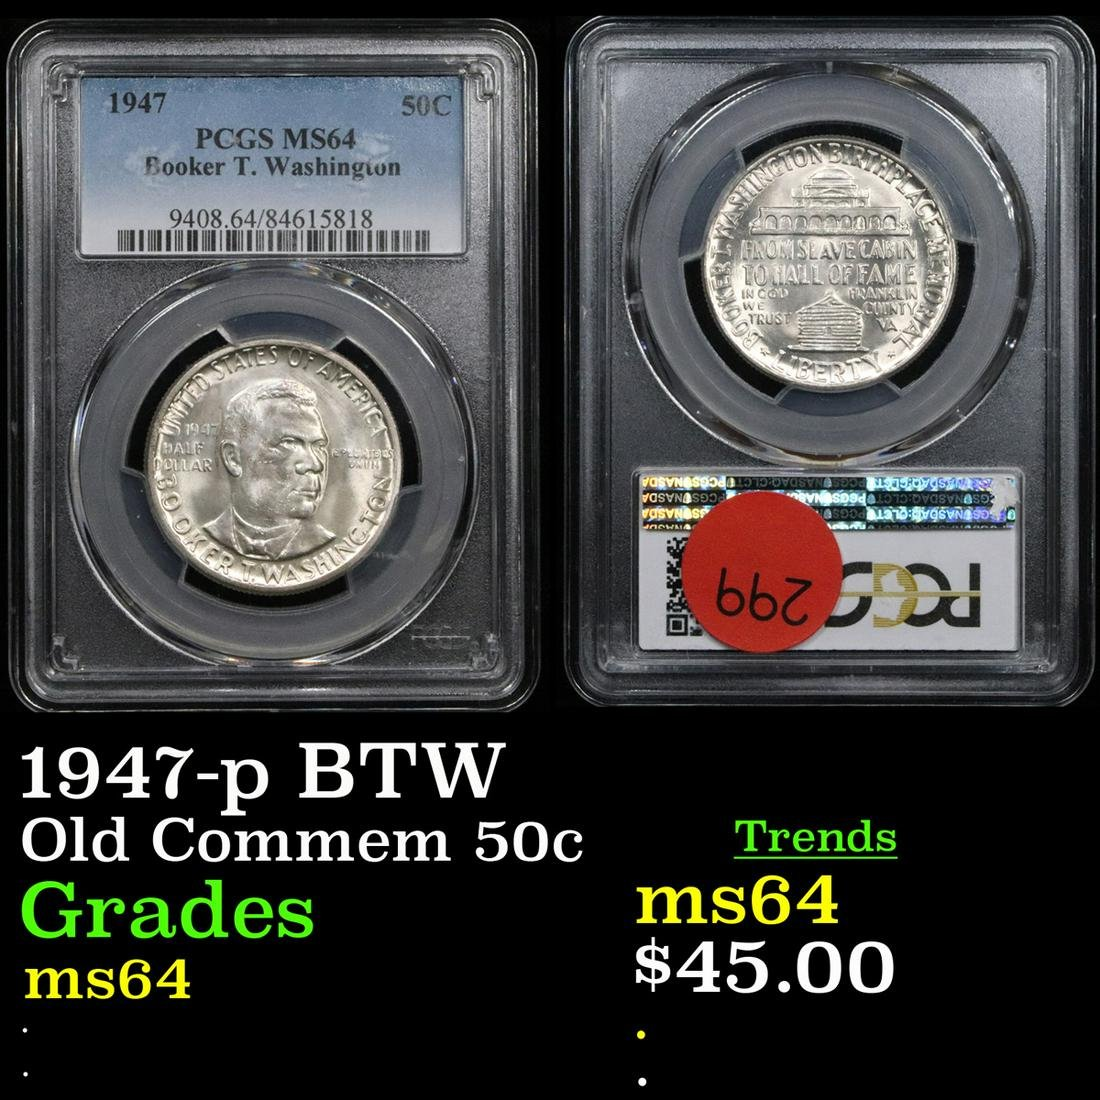 NGC 1947-p BTW Old Commem Half Dollar 50c Graded ms64